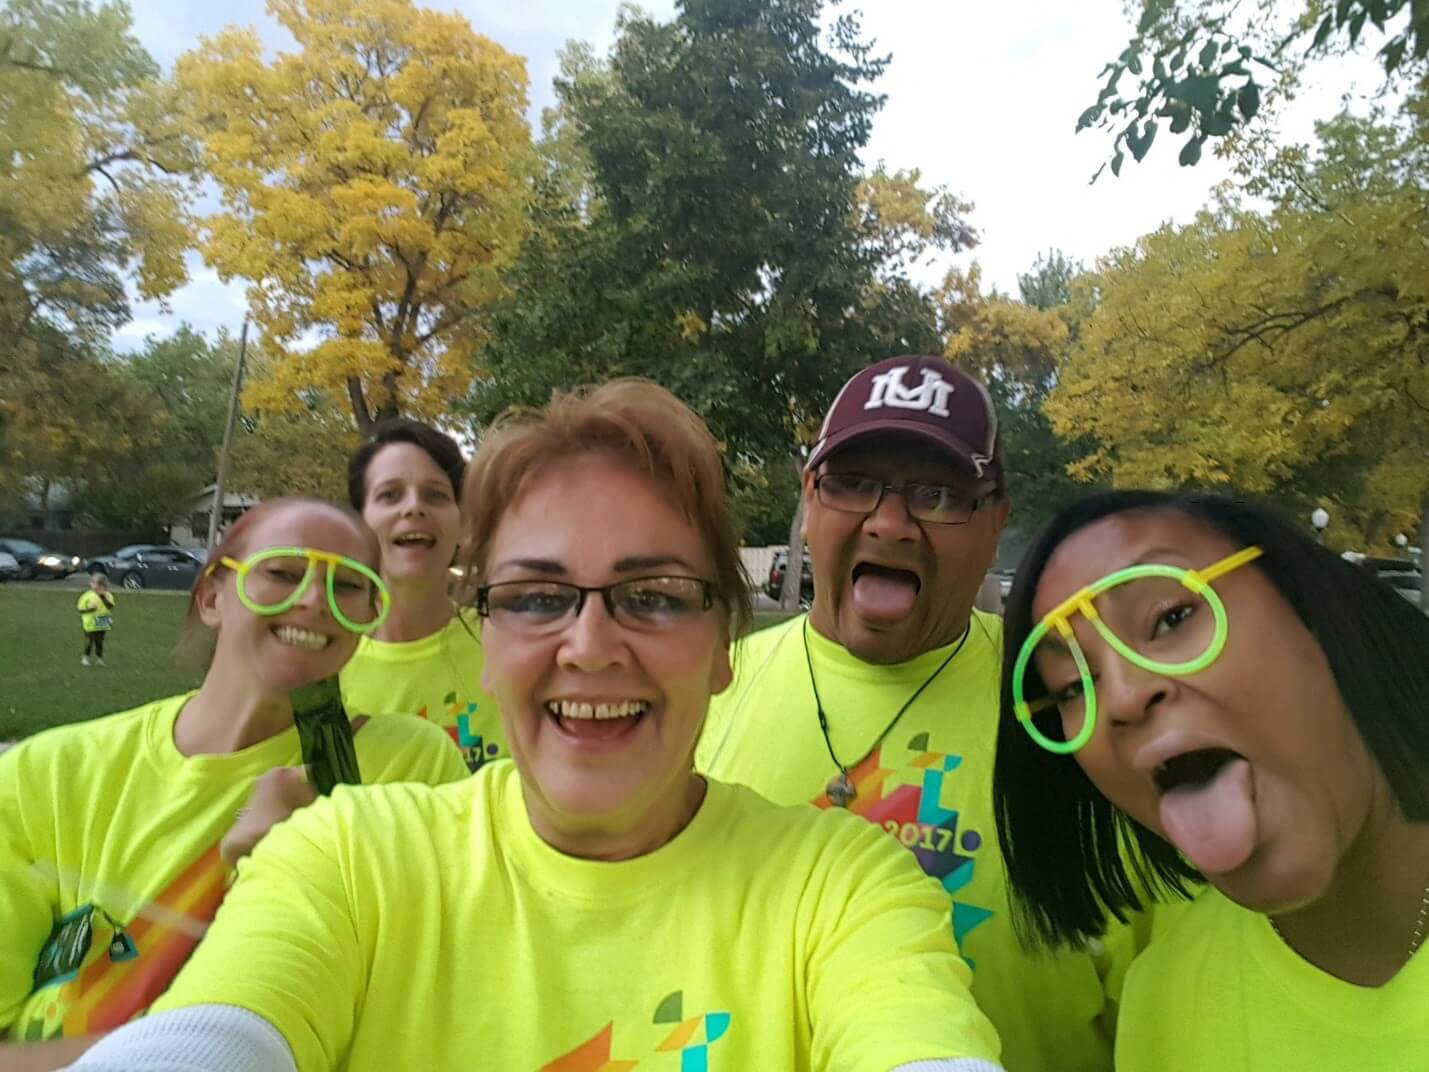 Glow Run in Billings, Montana